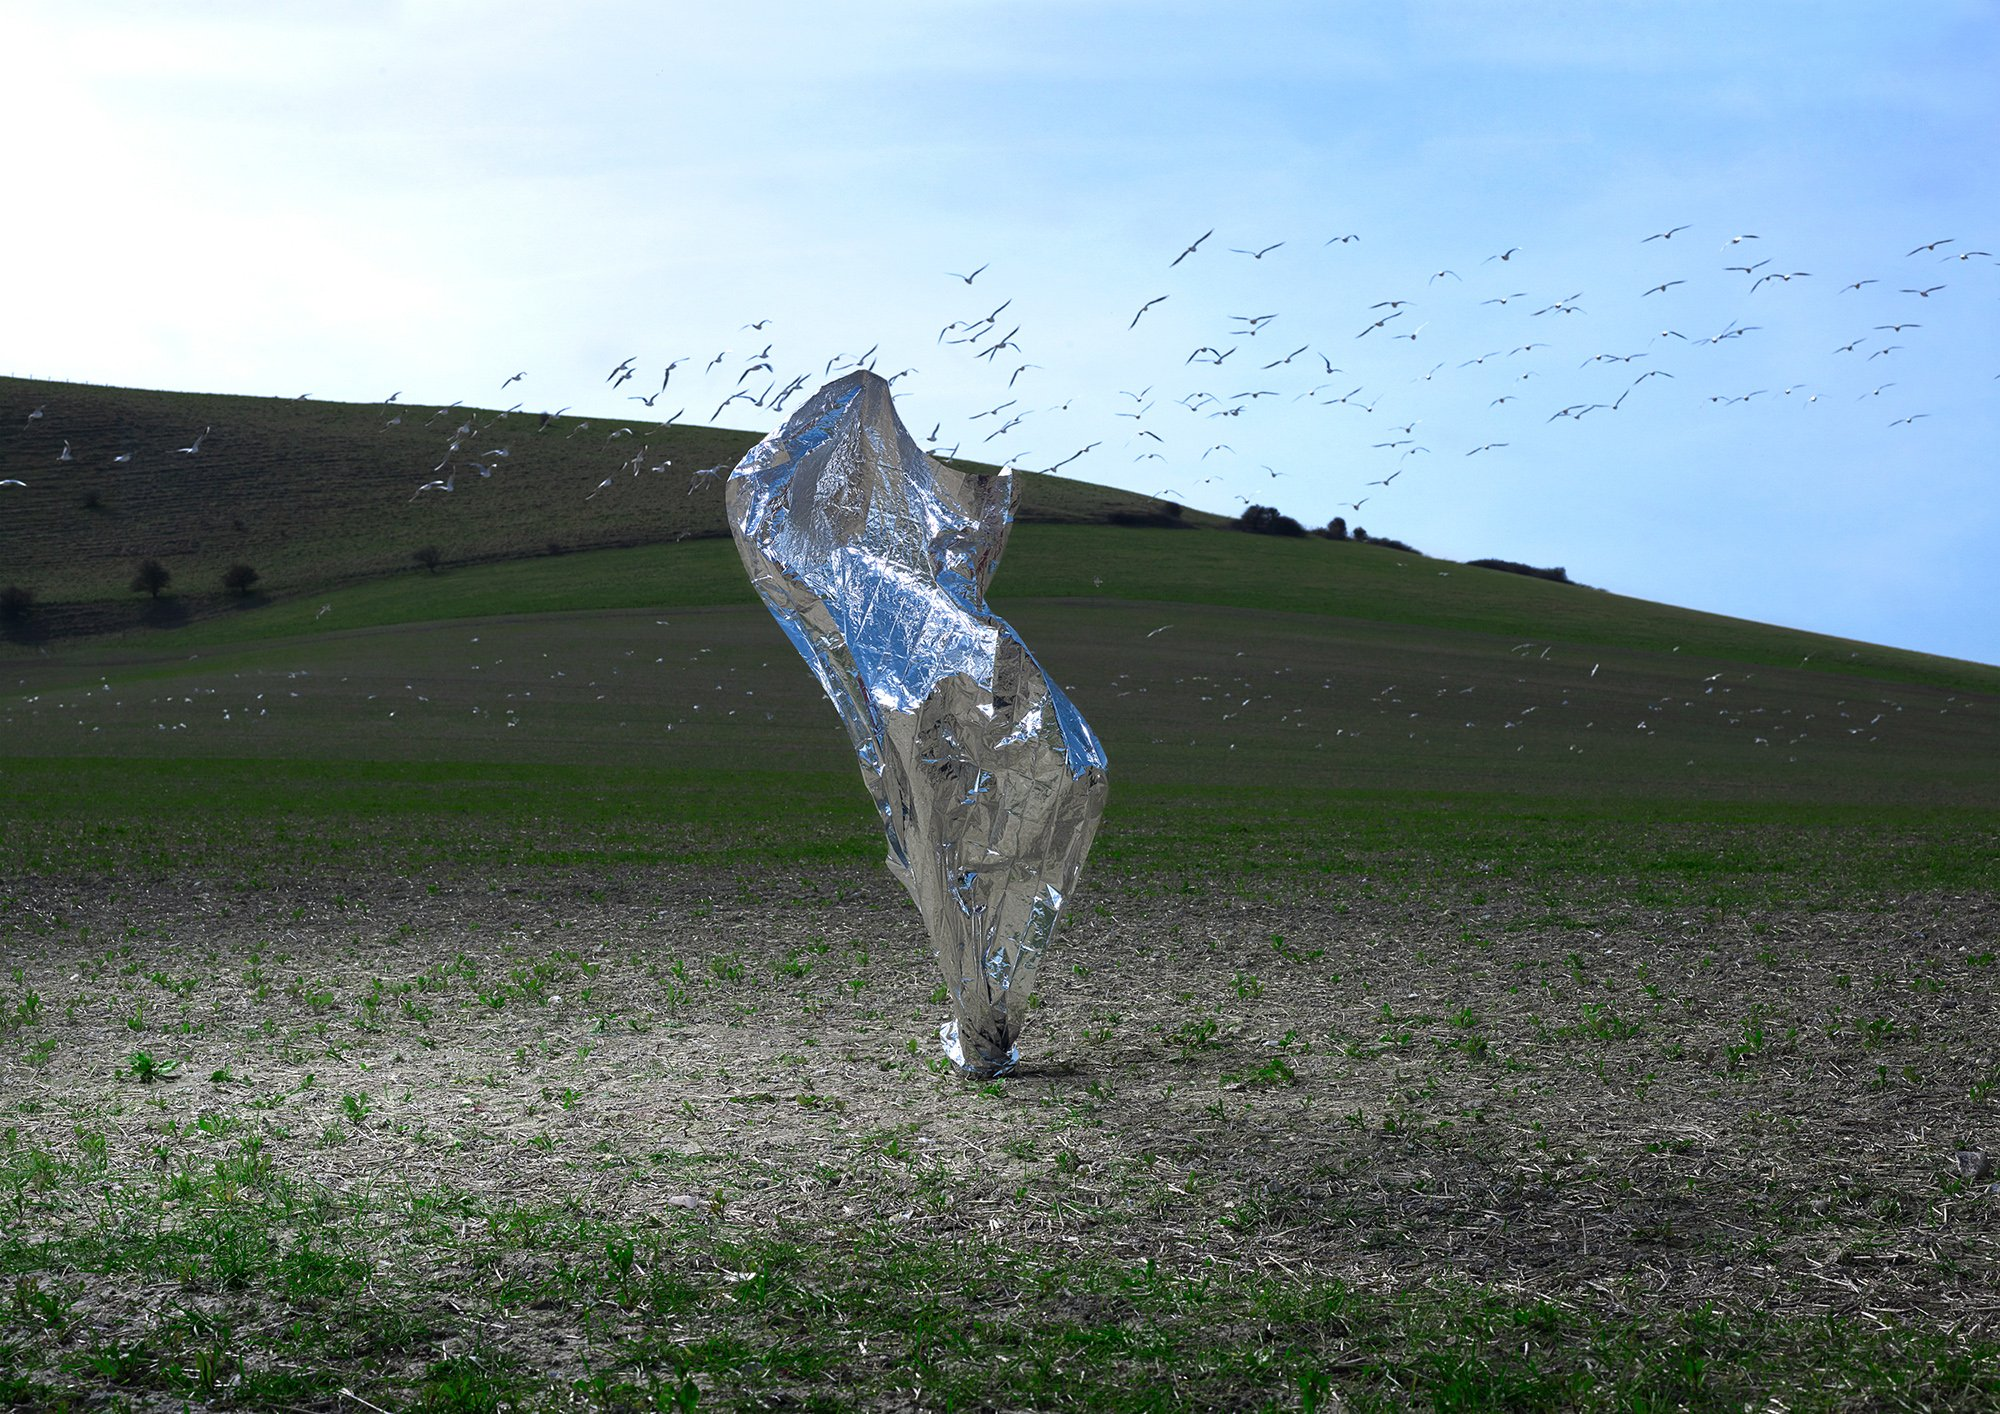 Transient Sculptures, metallic, birds